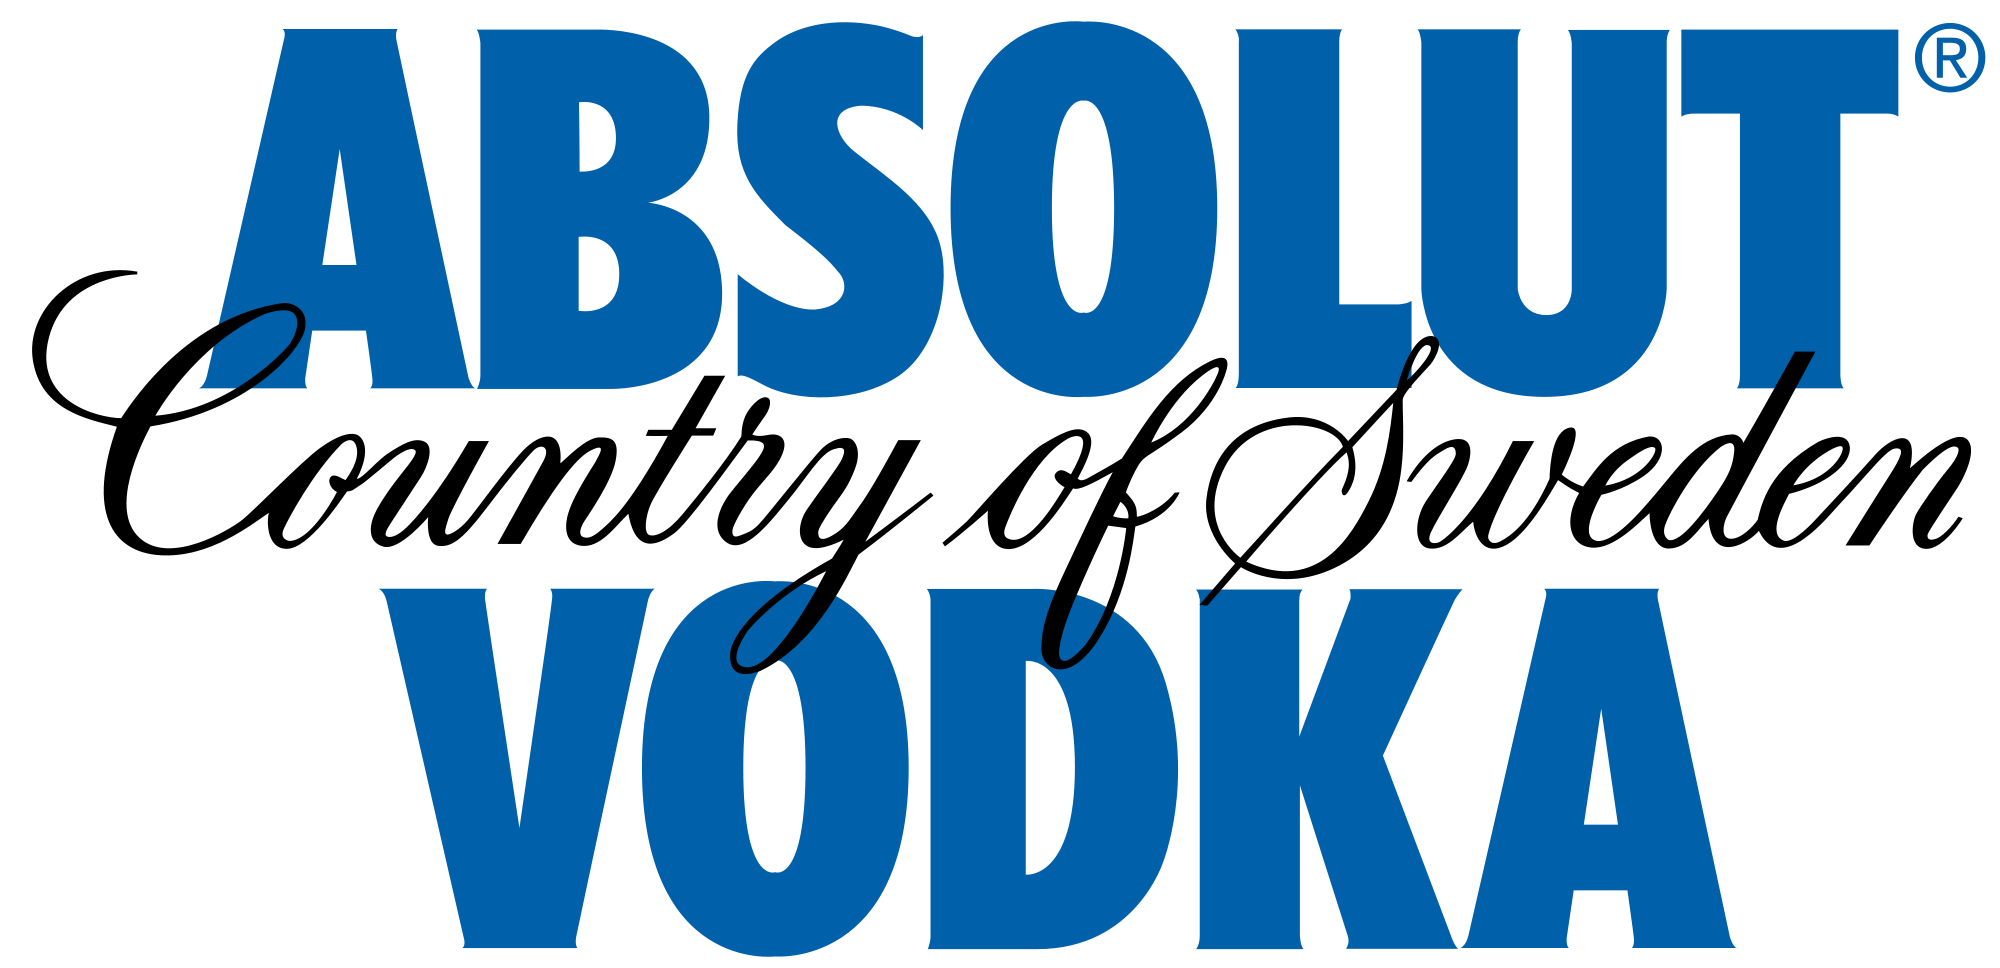 Absolut Vodka Vector Logo Wallpaper